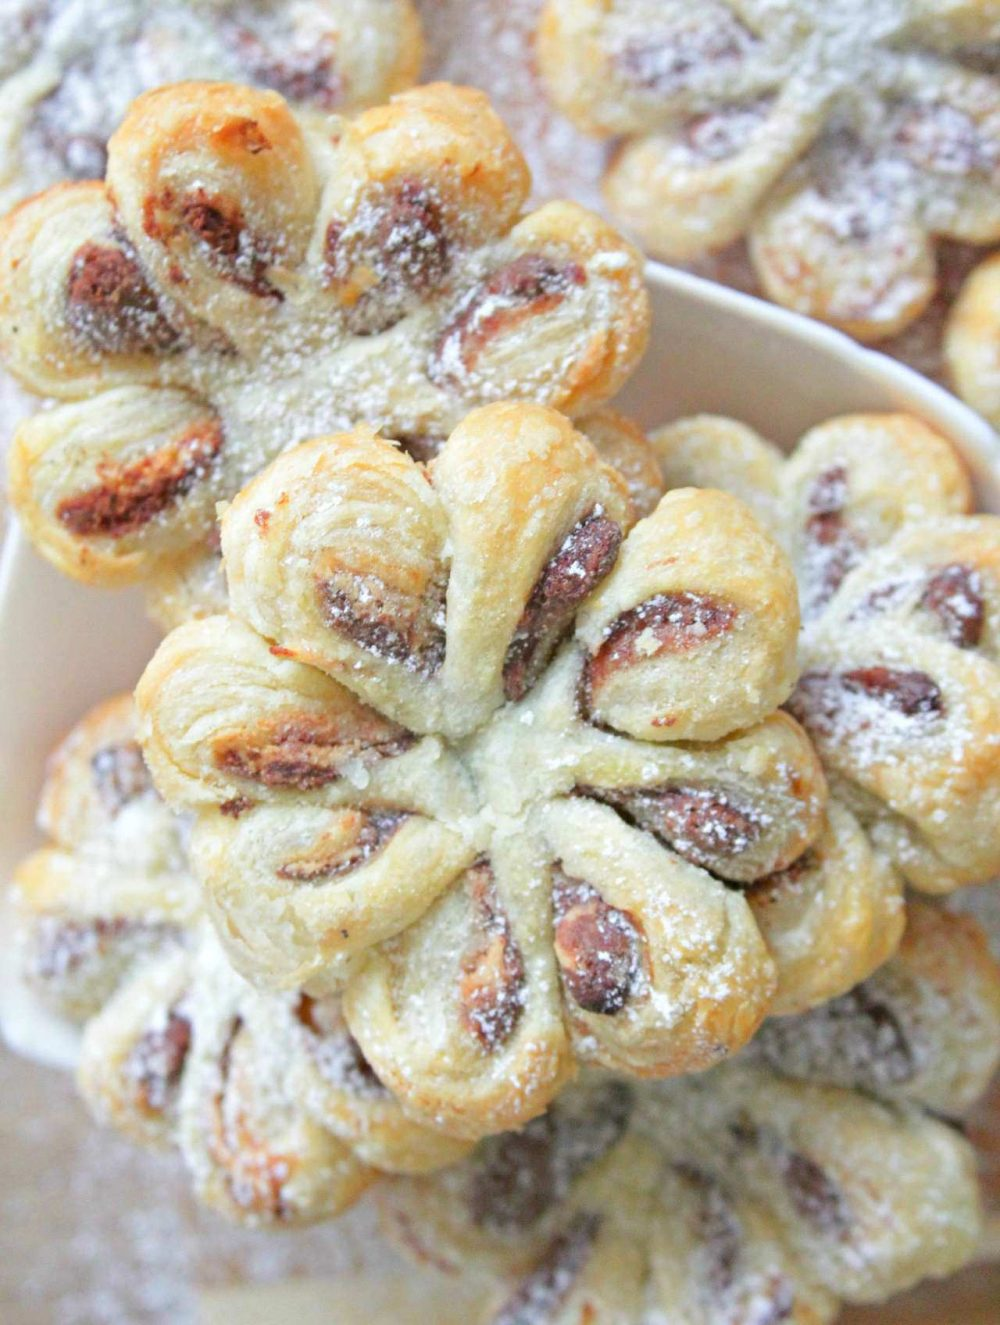 Nutella pastry flowers